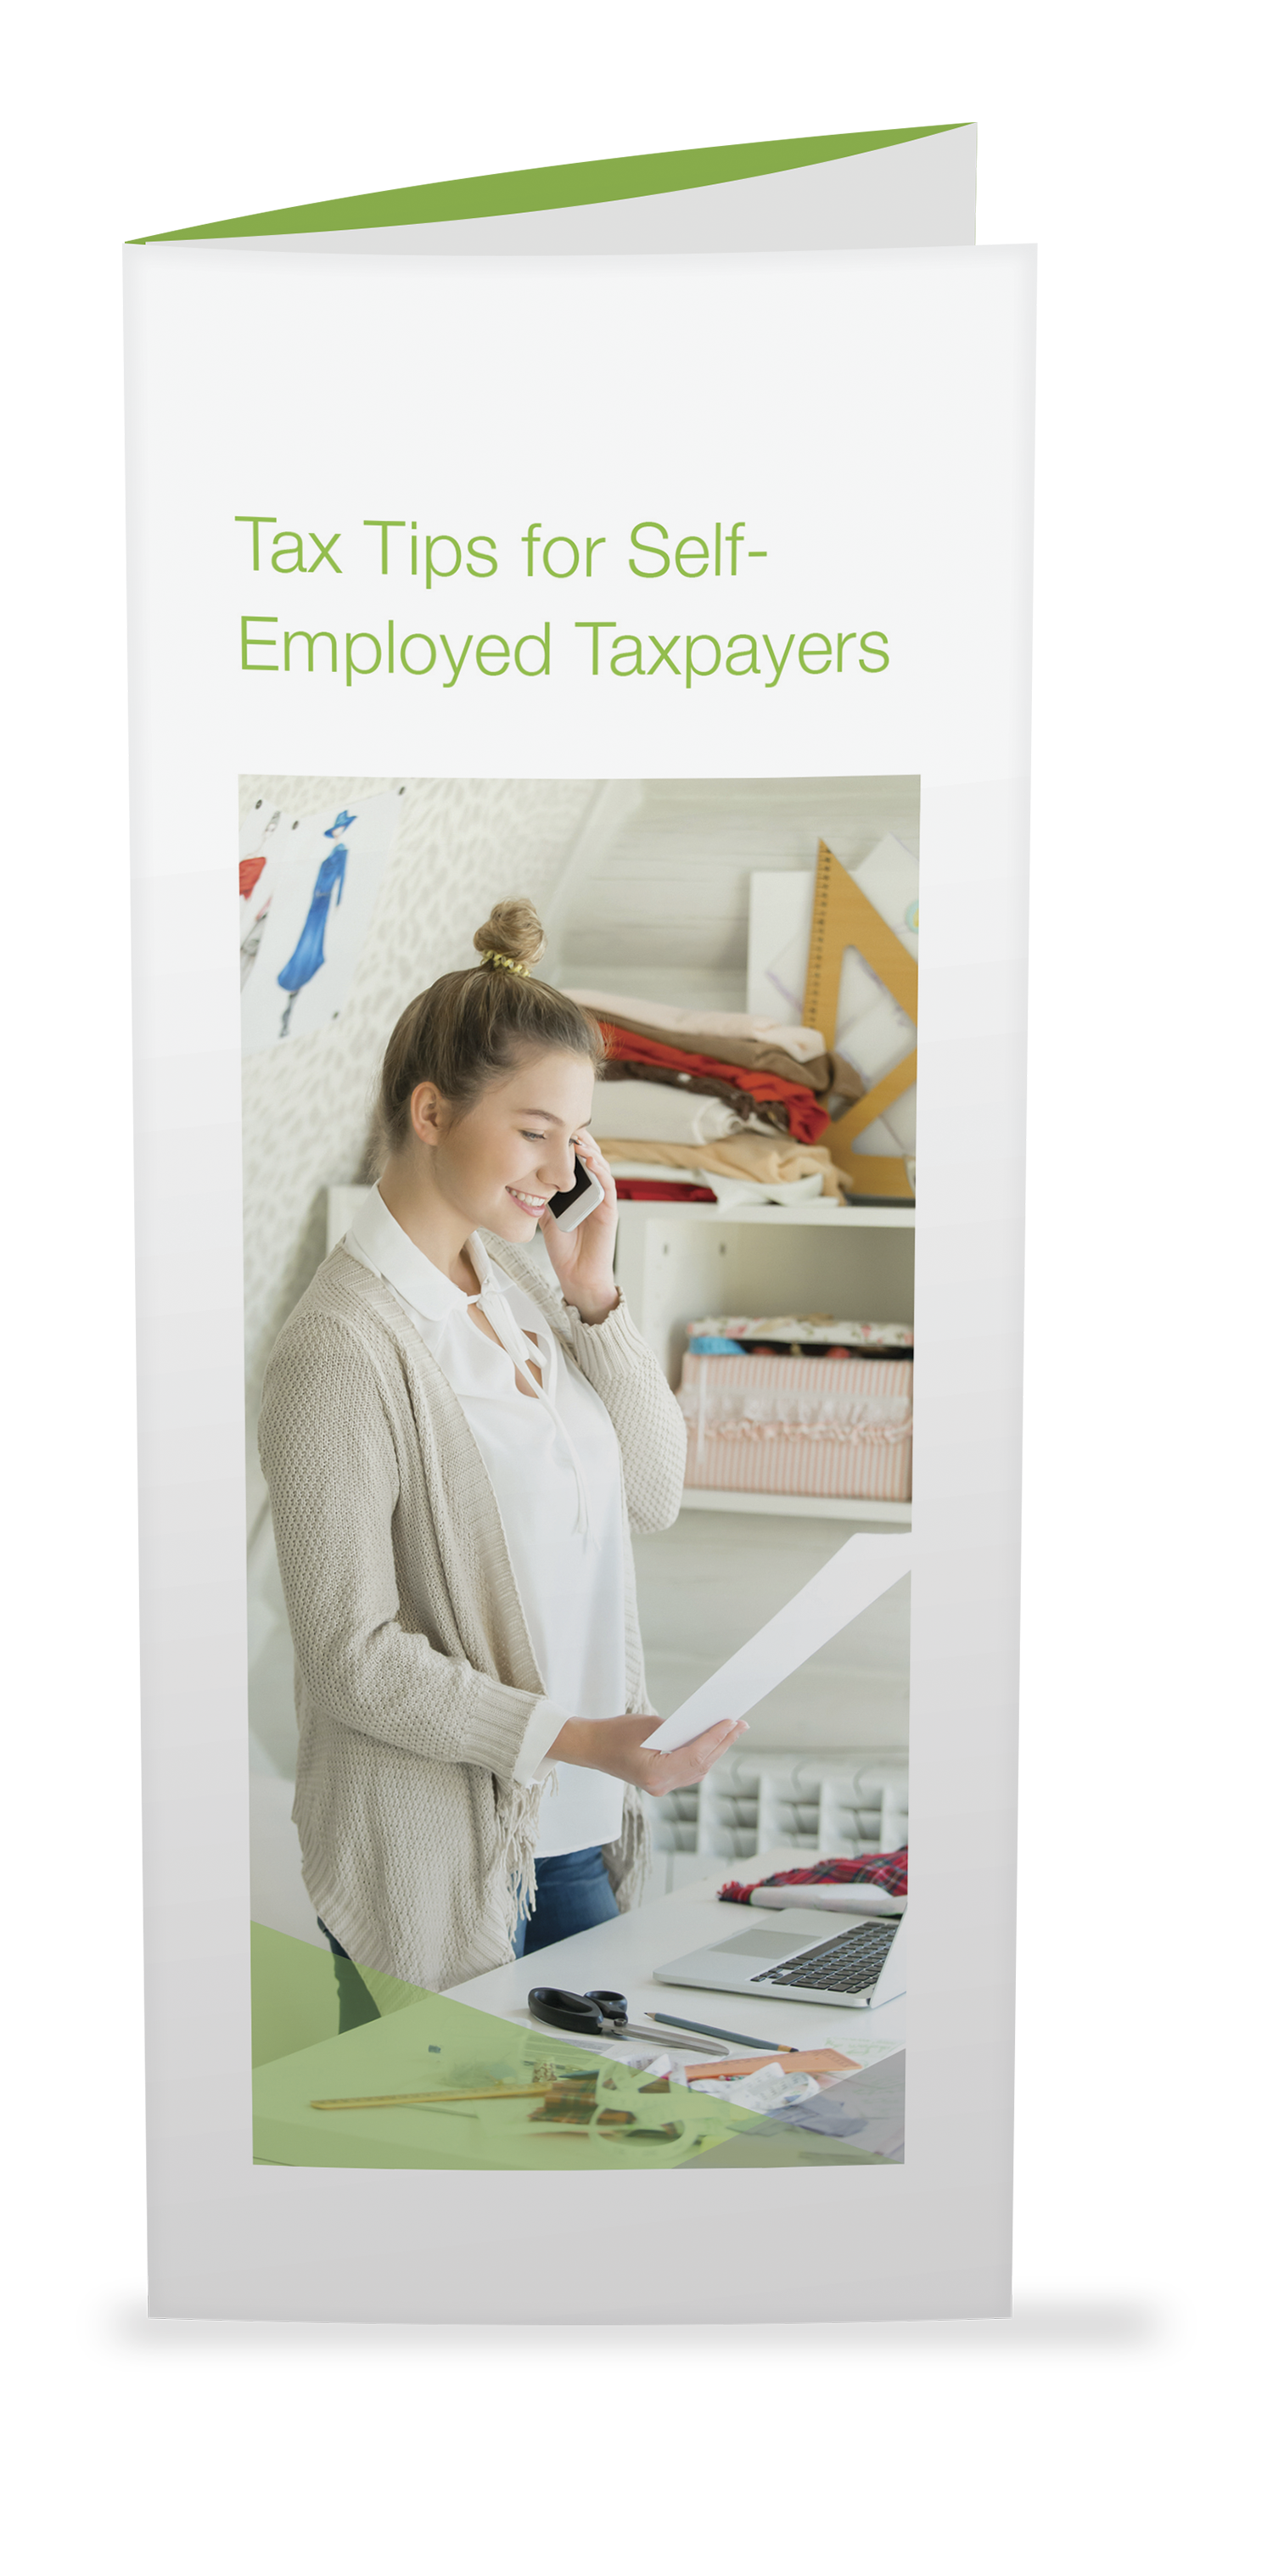 Tax Tips for Self-Employed Taxpayers Brochures - 25/Pkg - #863